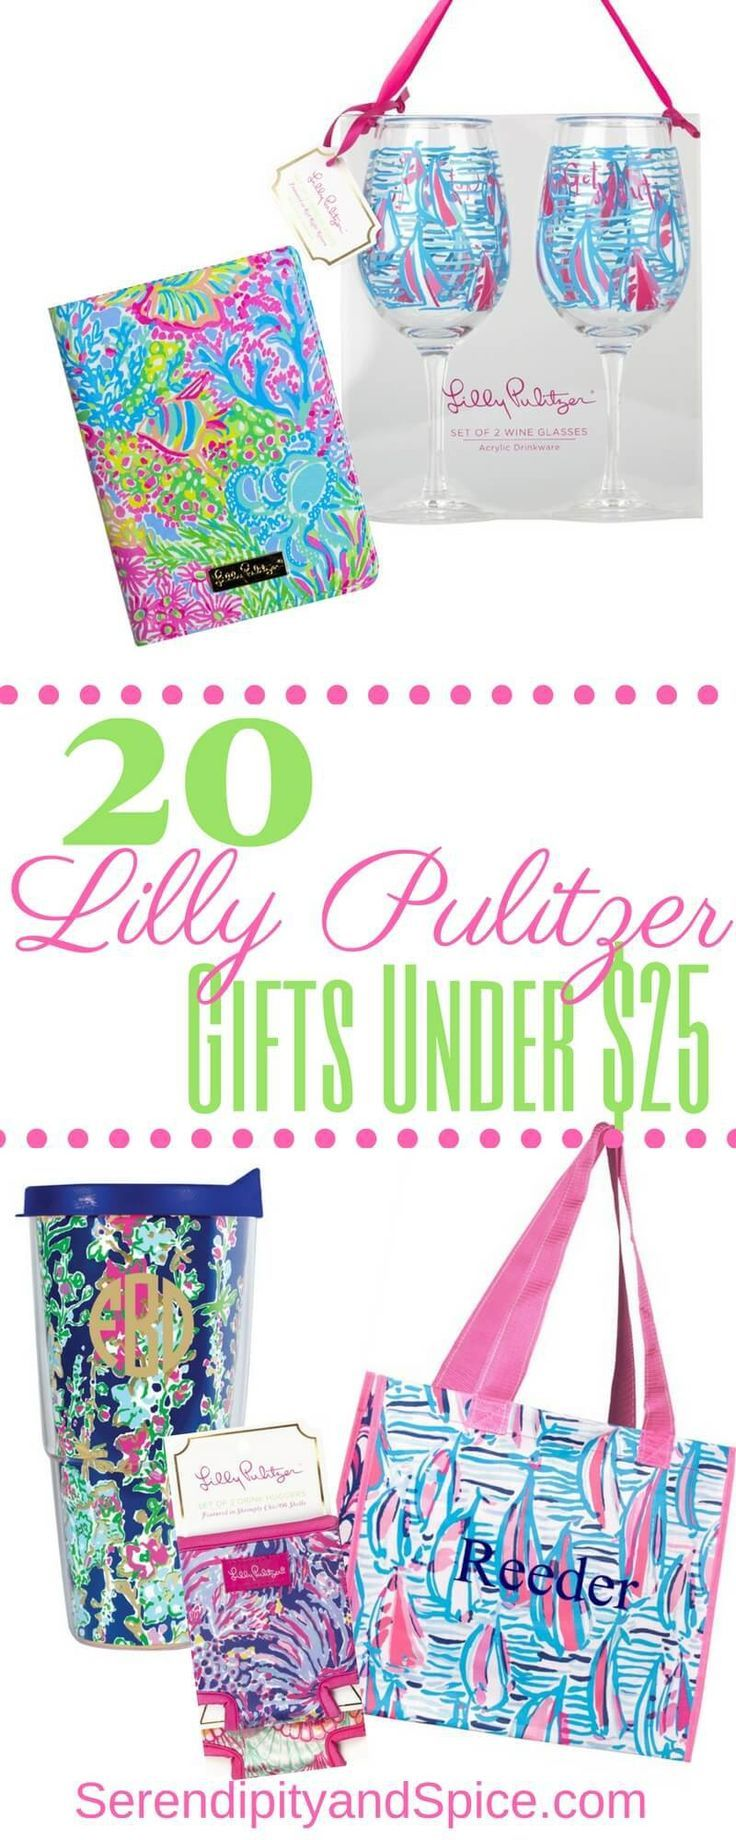 Gifts for Her Lilly Pulitzer Under 25 Birthday gifts